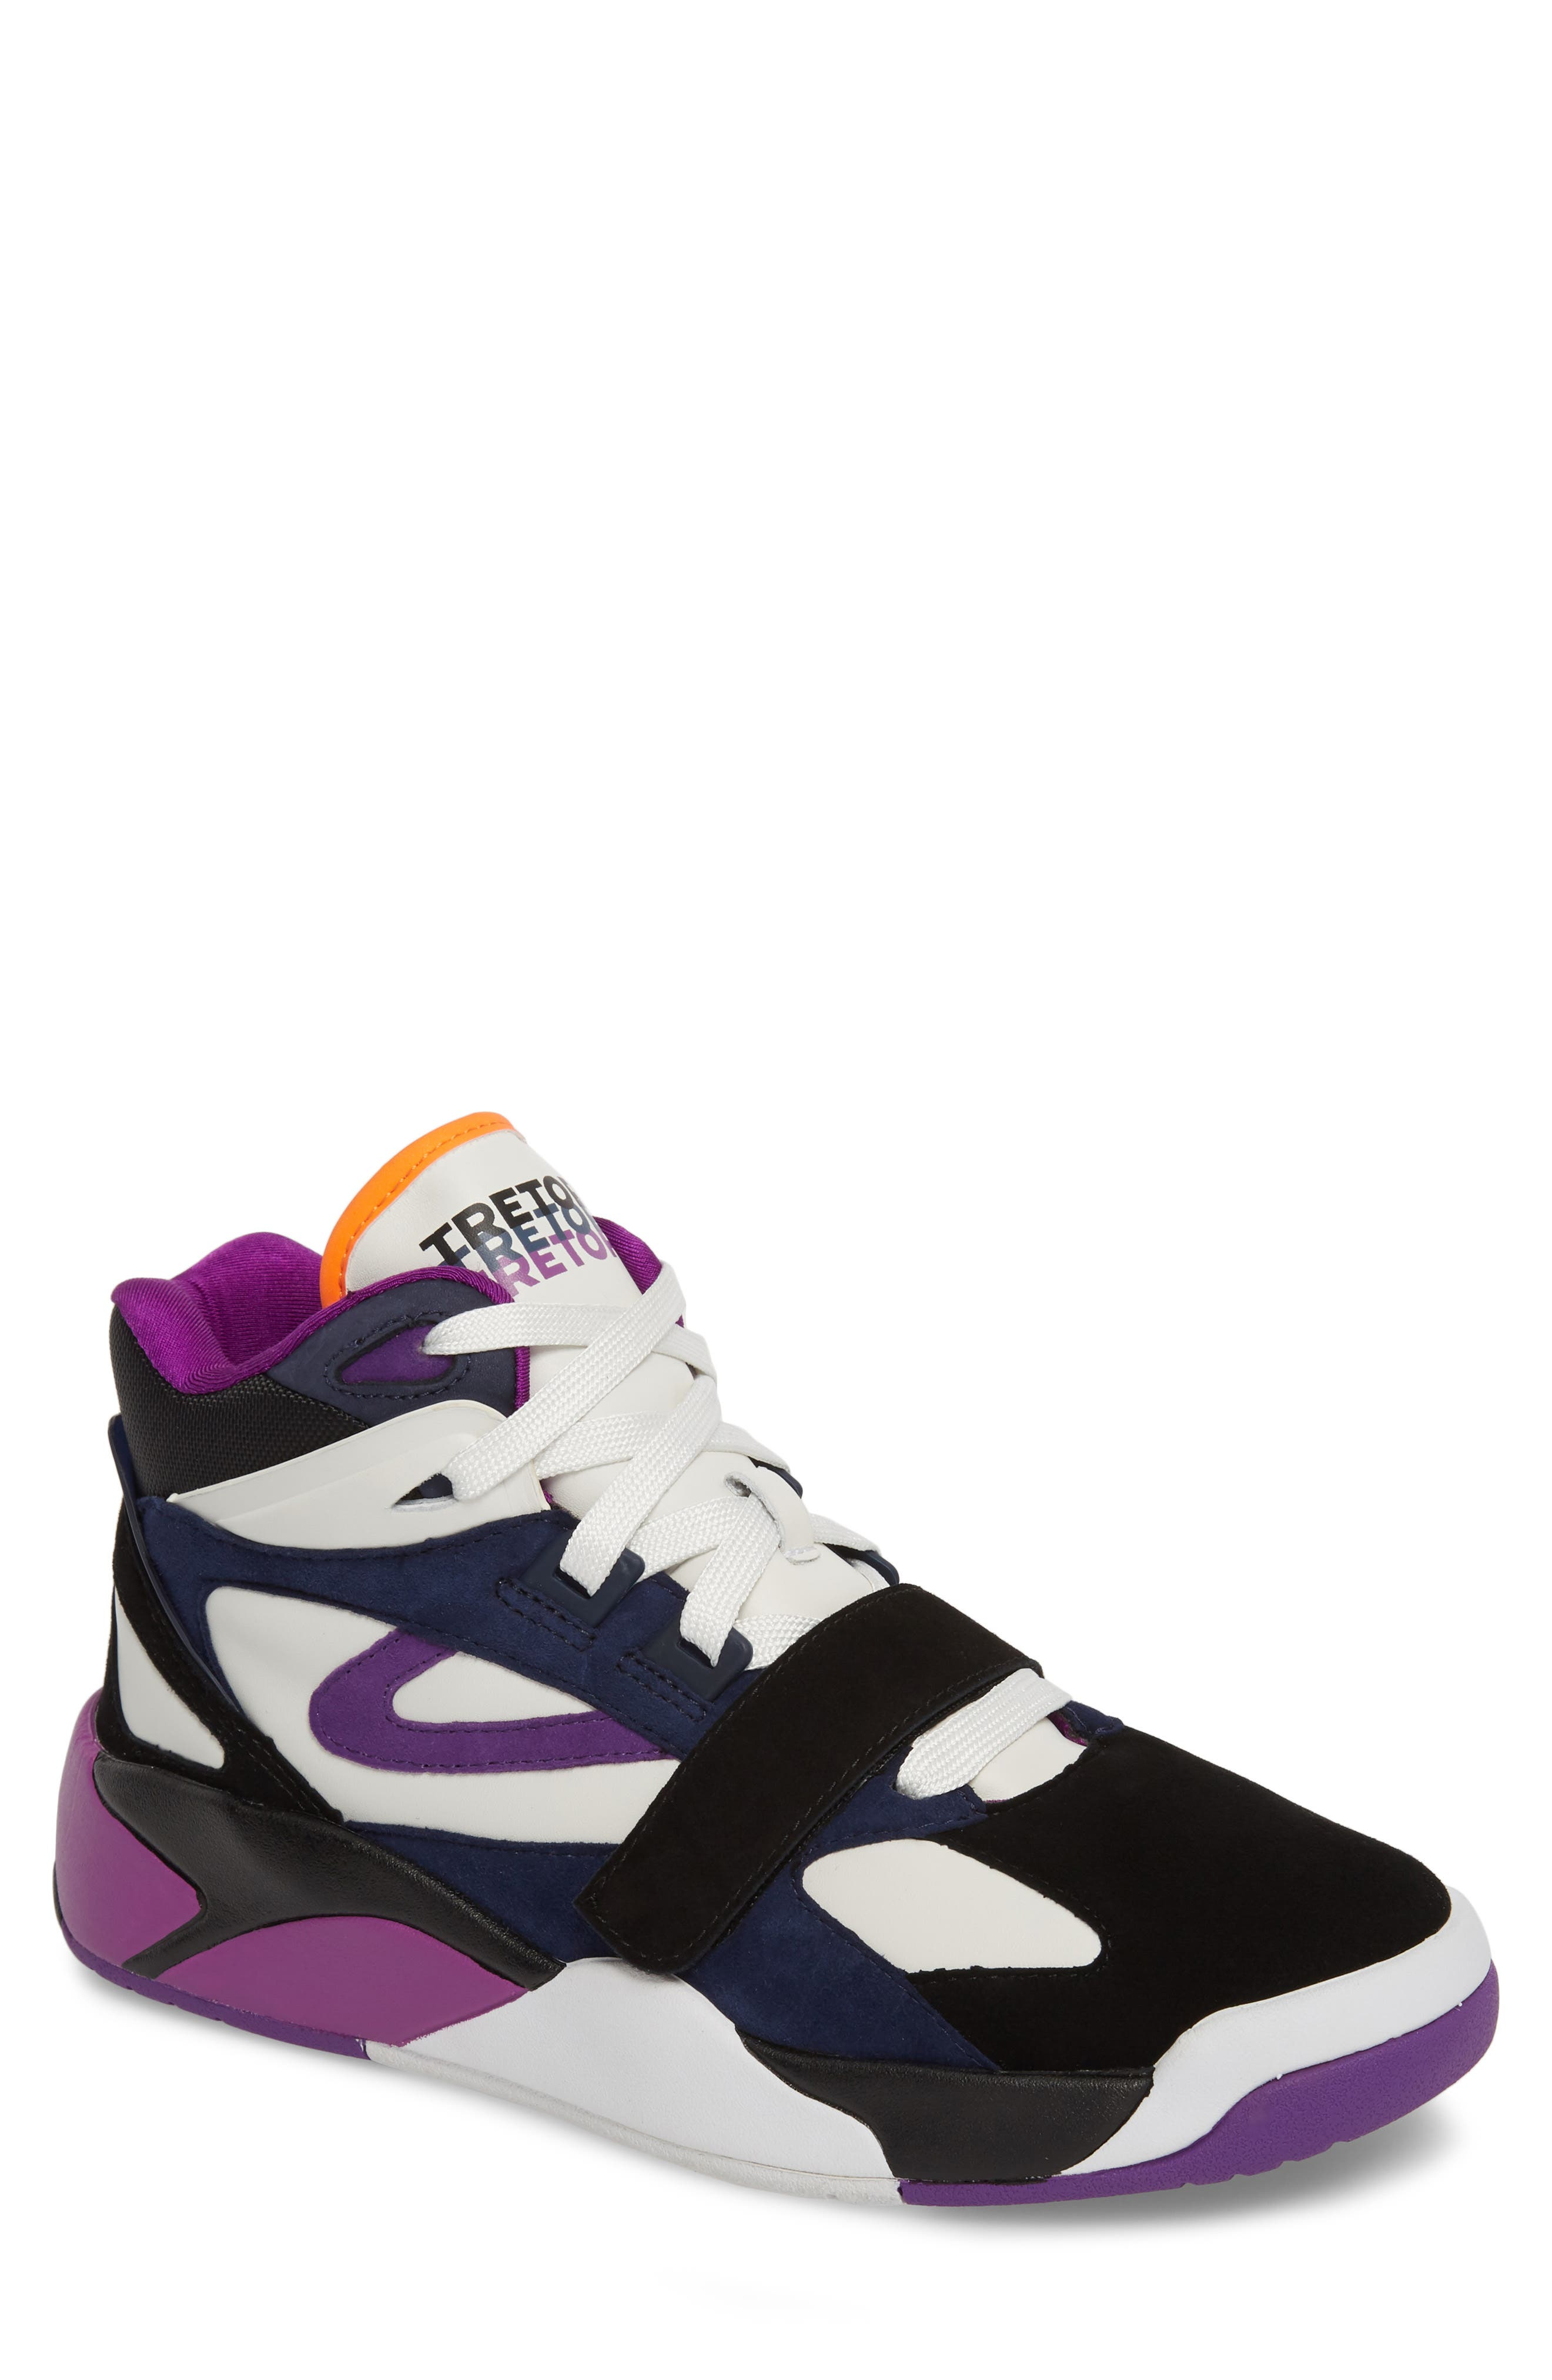 Andre 3000 Bostad 2 High Top Sneaker,                             Main thumbnail 1, color,                             510